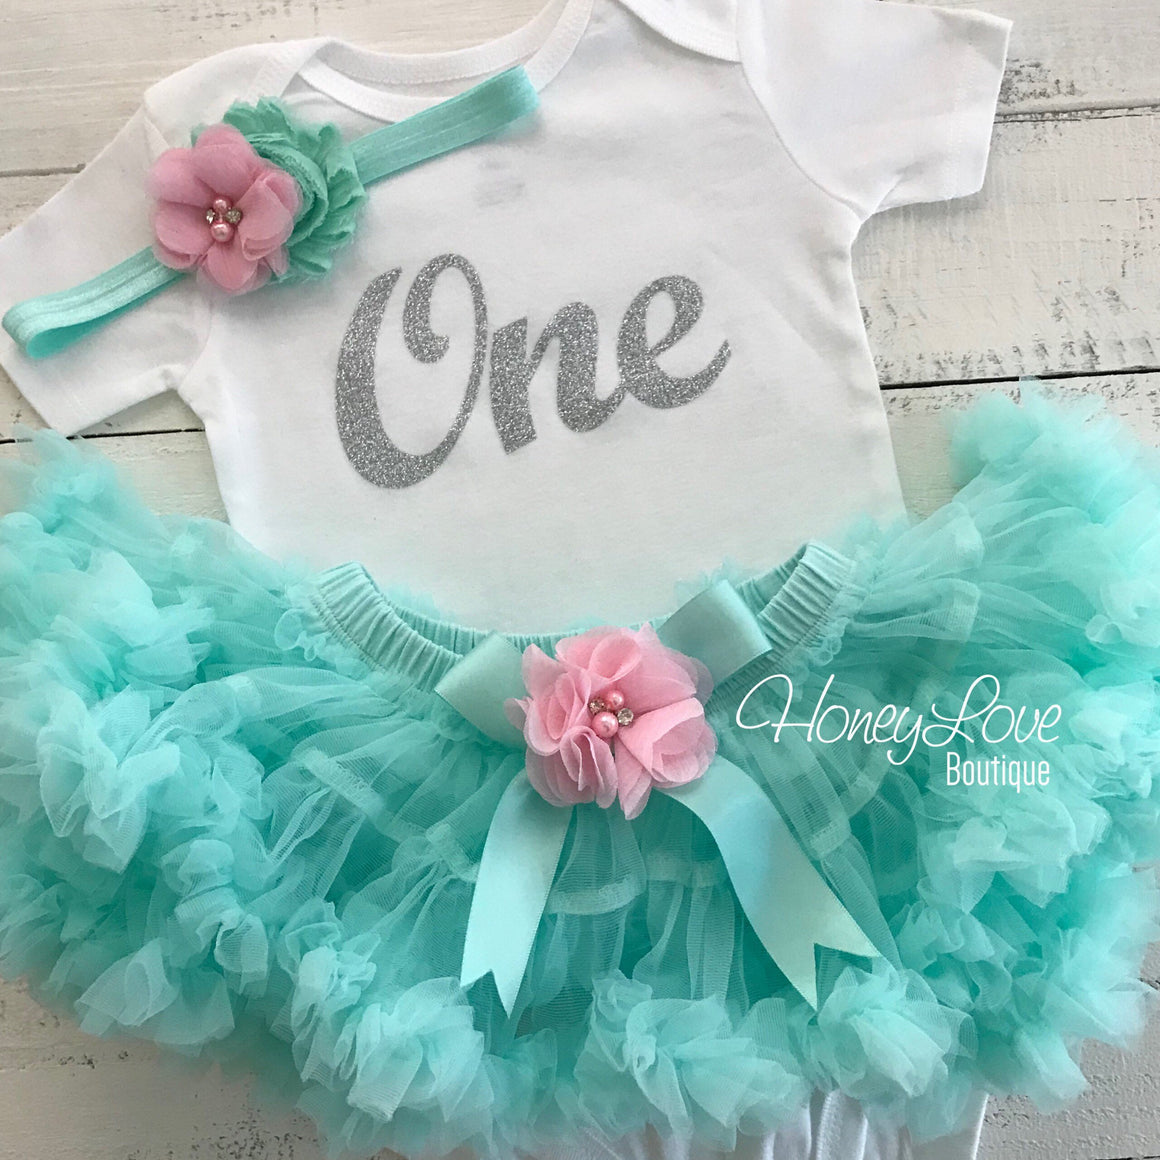 One - Birthday Outfit - Mint/Aqua, Light Pink and Silver/Gold glitter - embellished pettiskirt - HoneyLoveBoutique